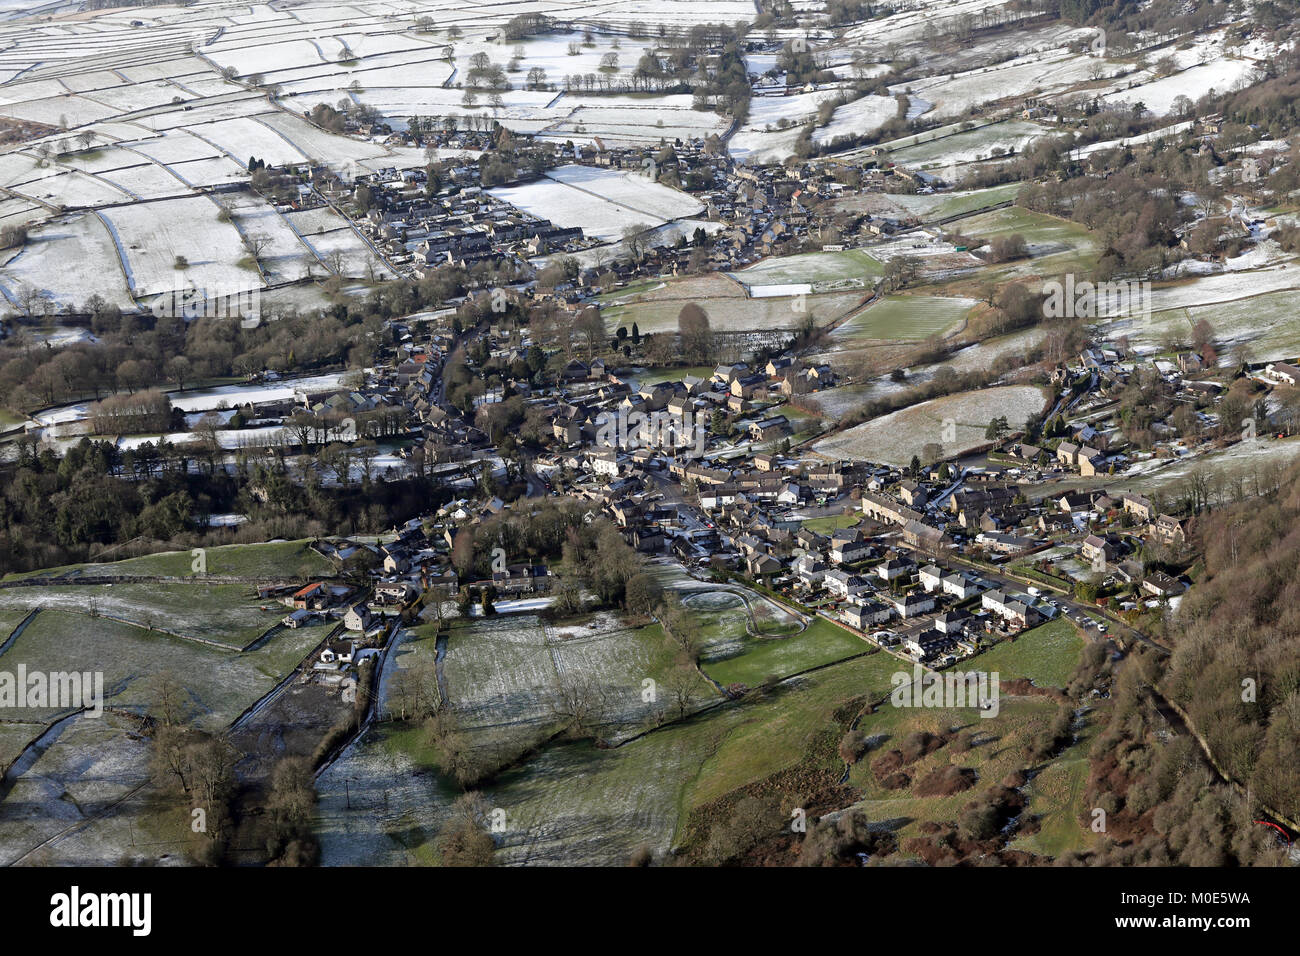 aerial view of the Derbyshire village of Eyam, UK - Stock Image